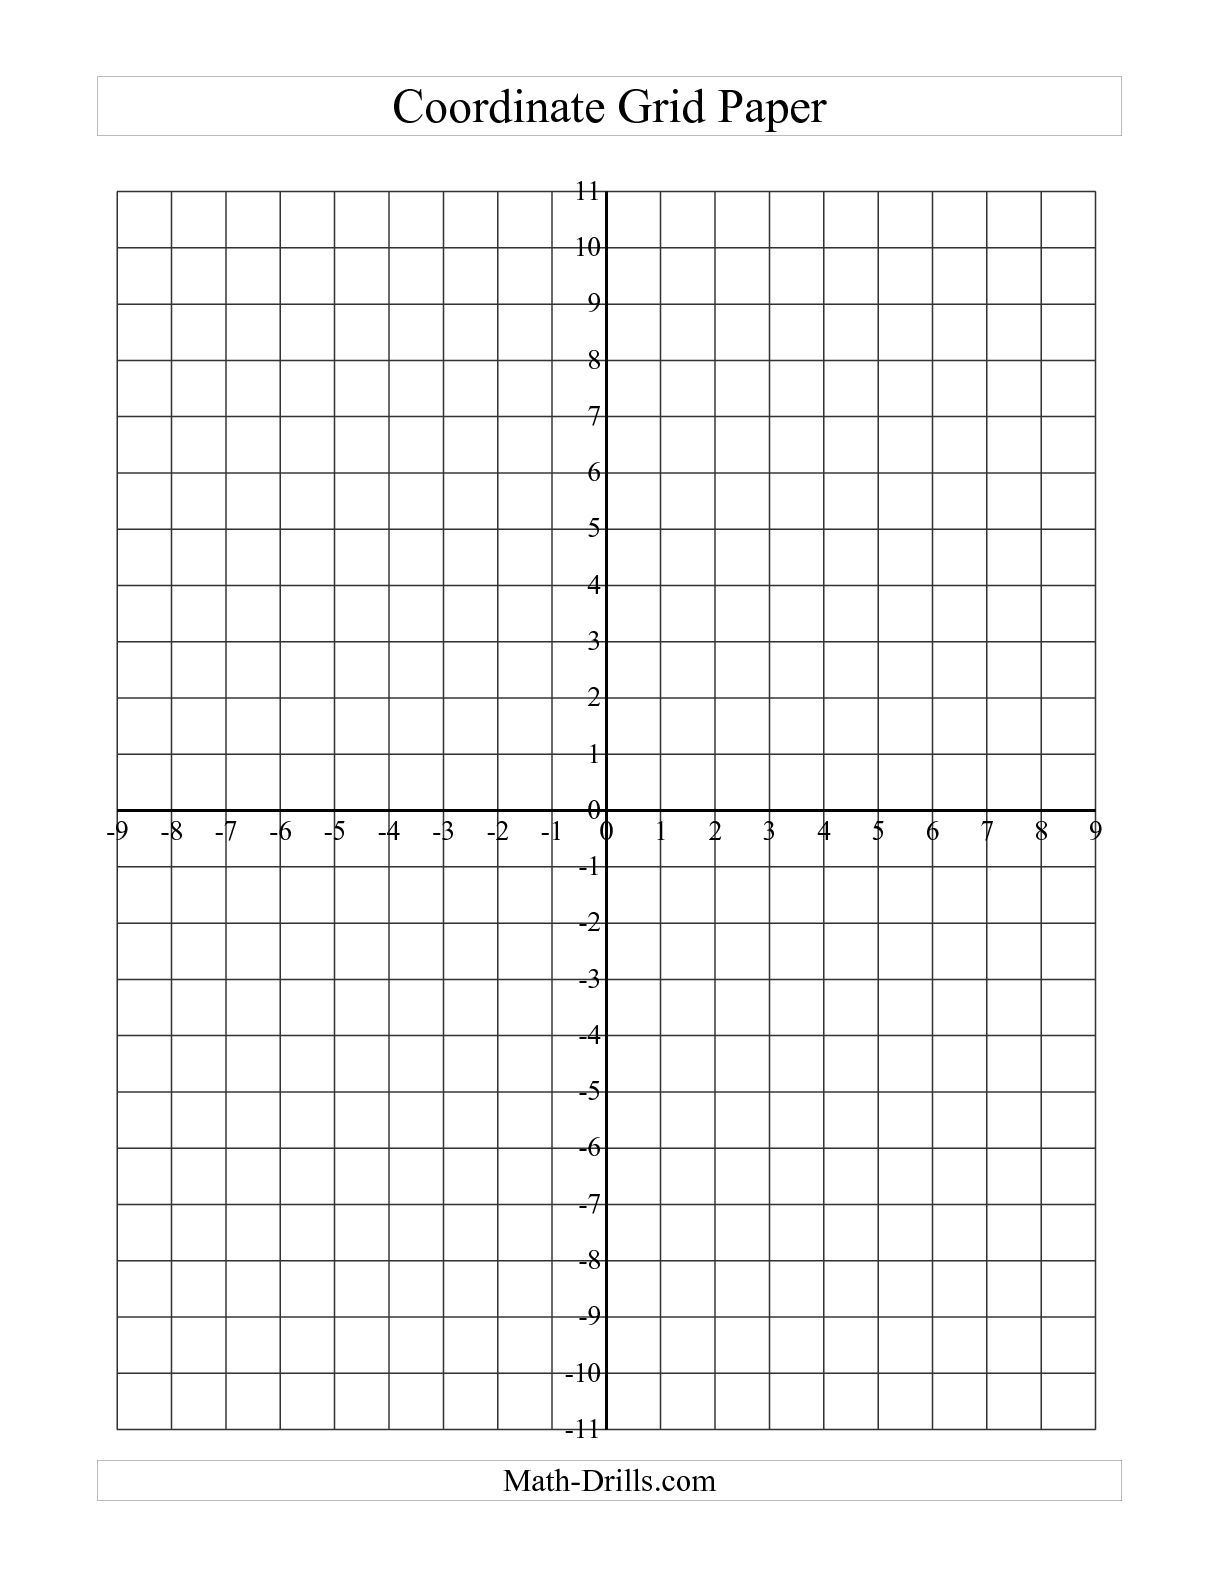 Worksheets Coordinate Grid Worksheets the coordinate grid paper a math worksheet from graph page at math